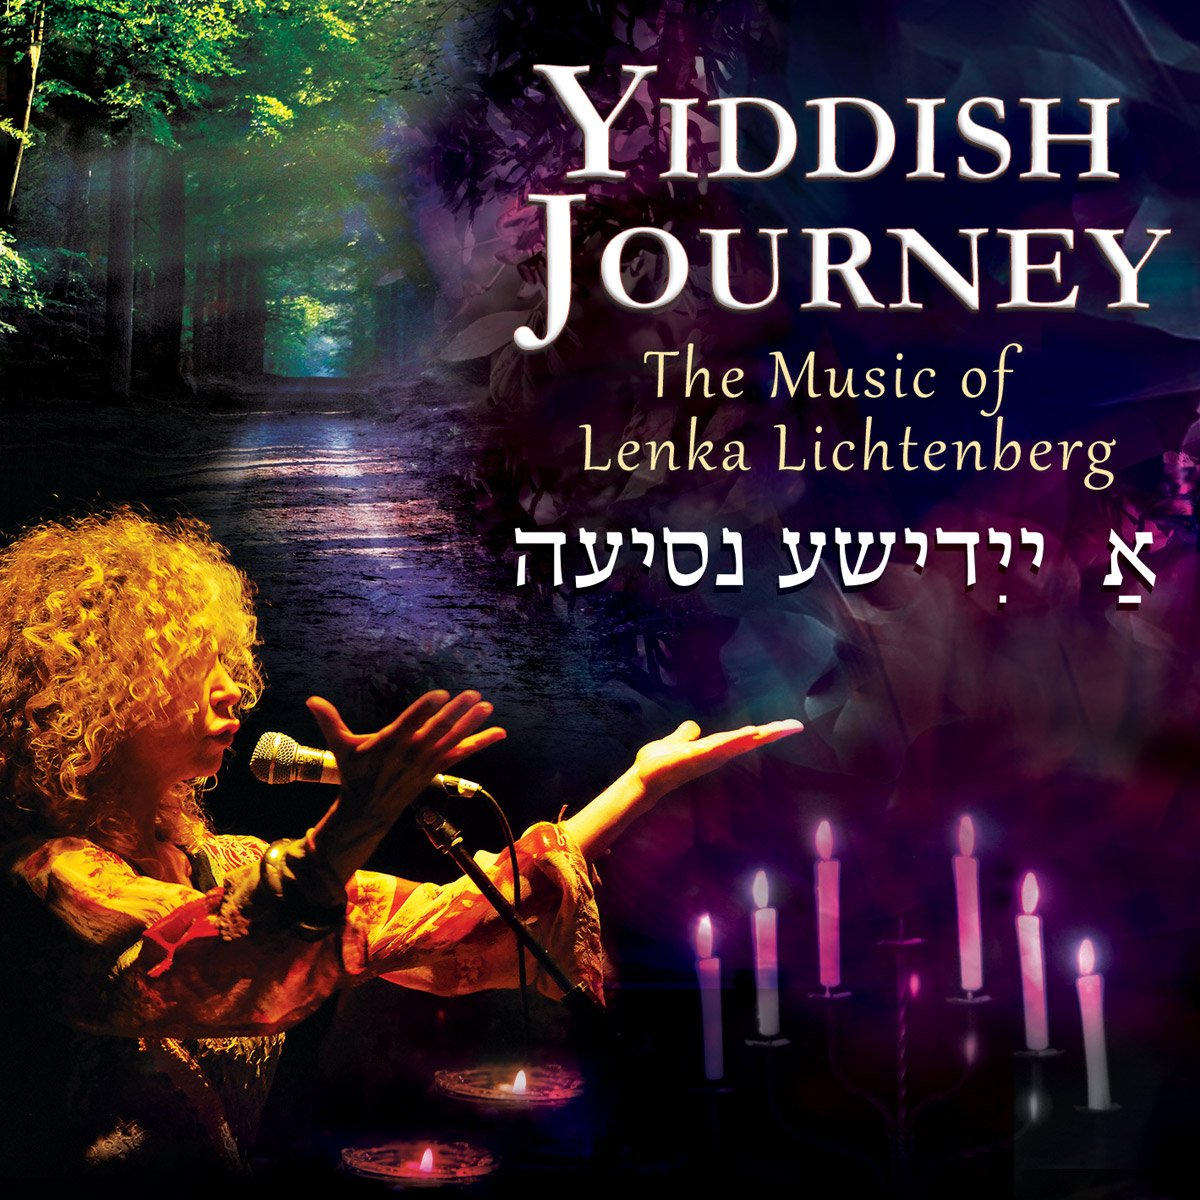 Yiddish Journey